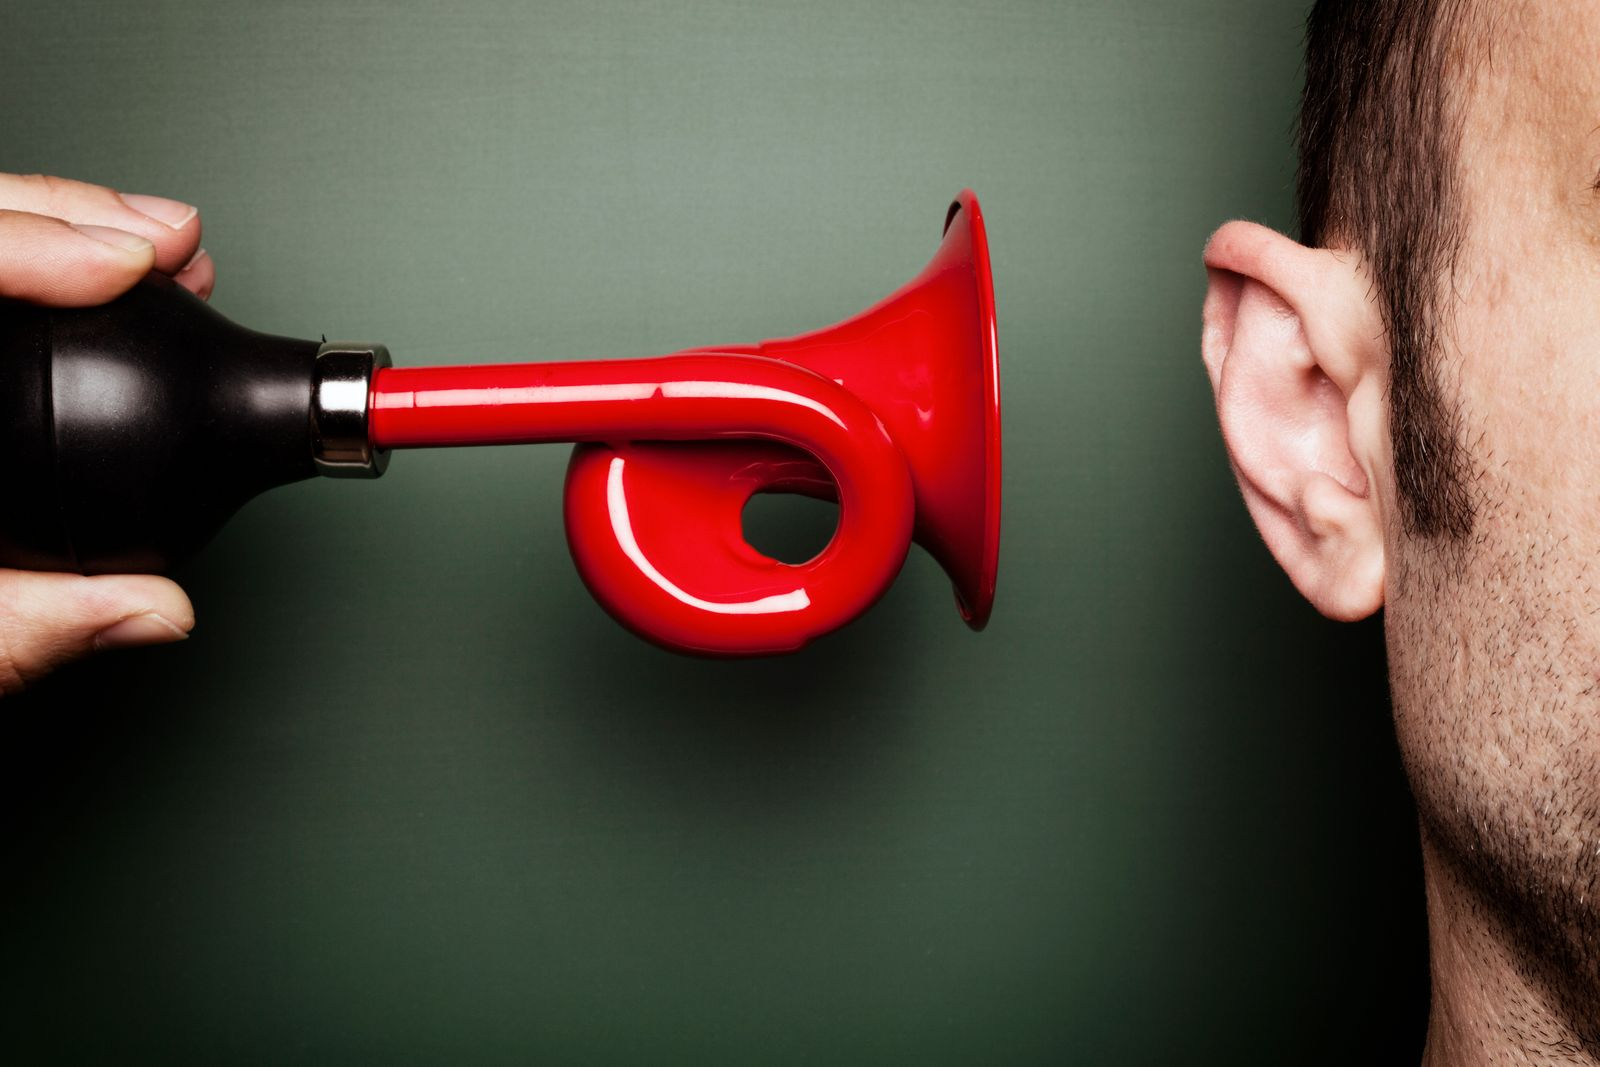 Attention Please - Signal Horn Ear Alarm Loud Scare Humor